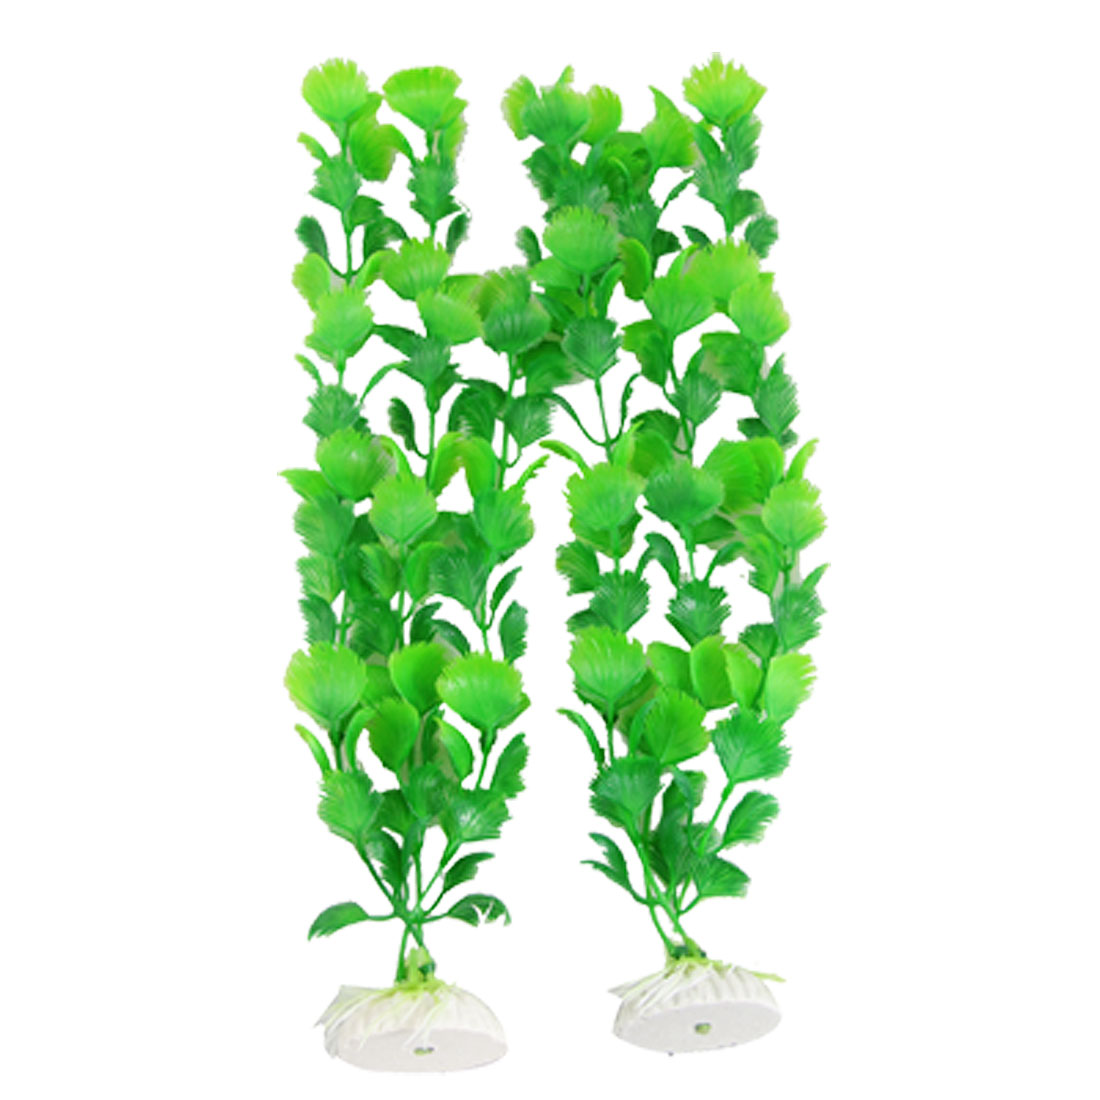 2pcs x 34CM Height Aquascaping Green Plants for Fish Tank